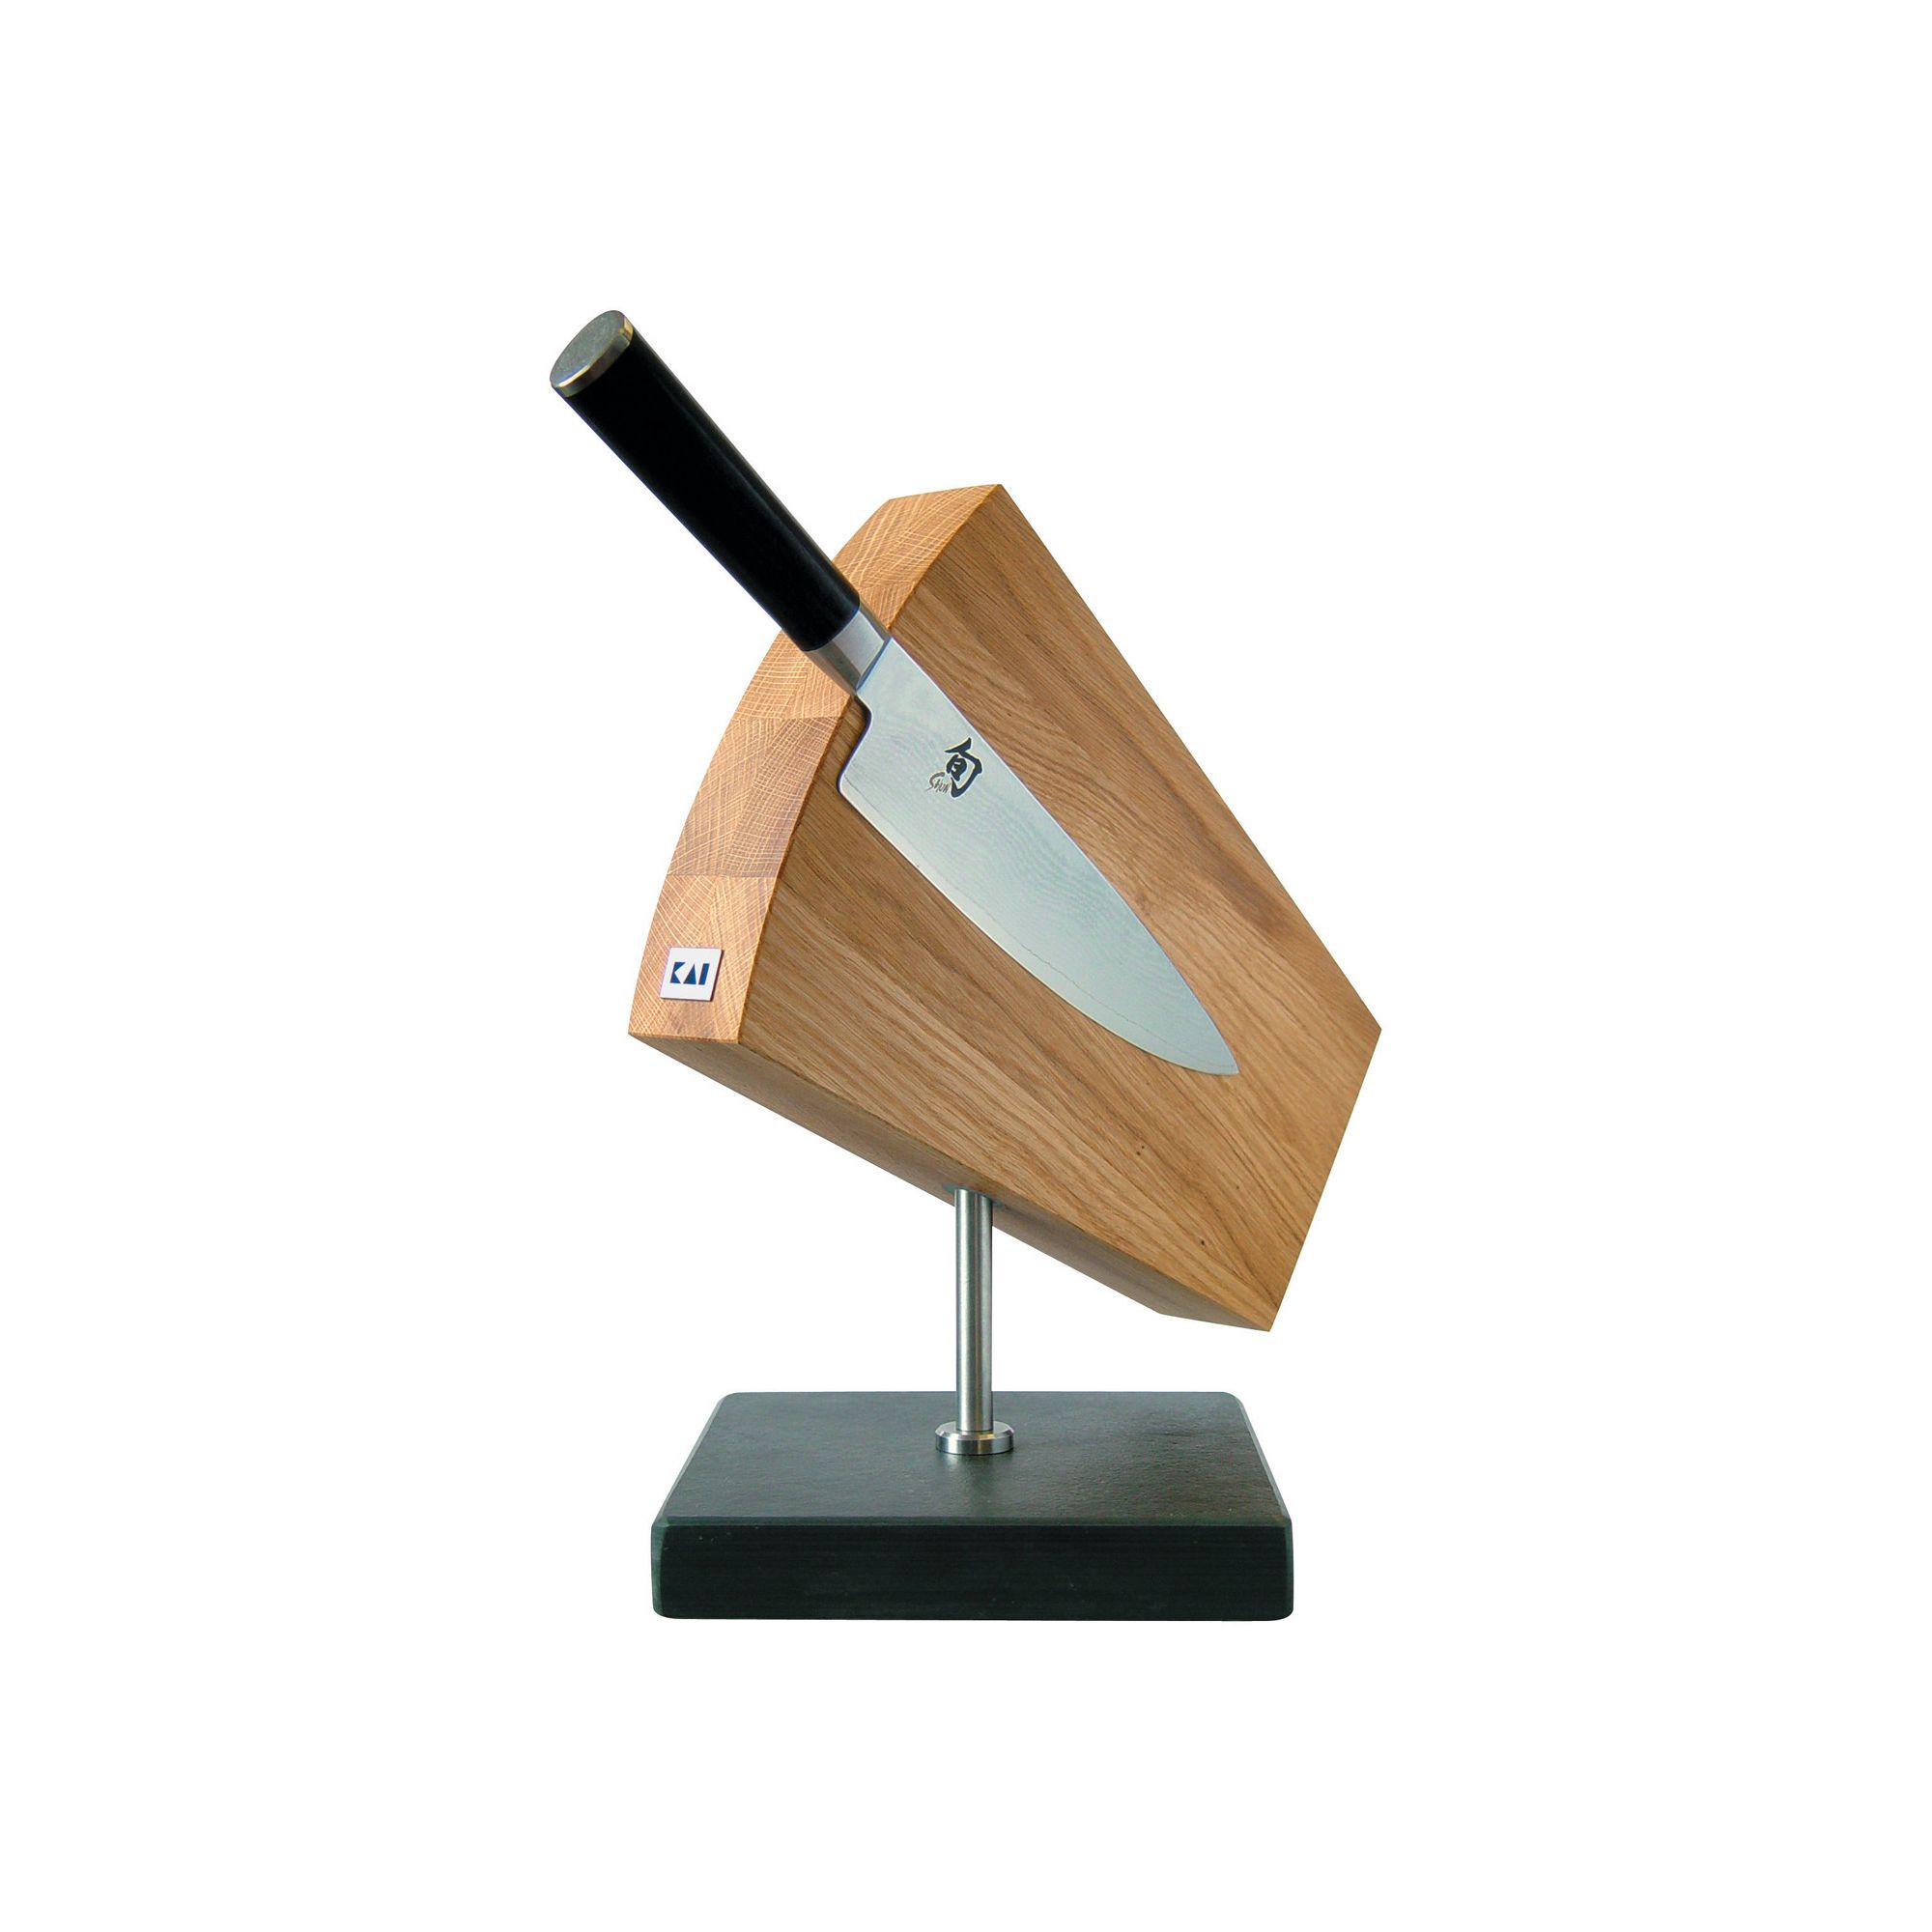 Kai 124Shun Knife Block, Turnable / Slate Pedestal at Tesco Direct